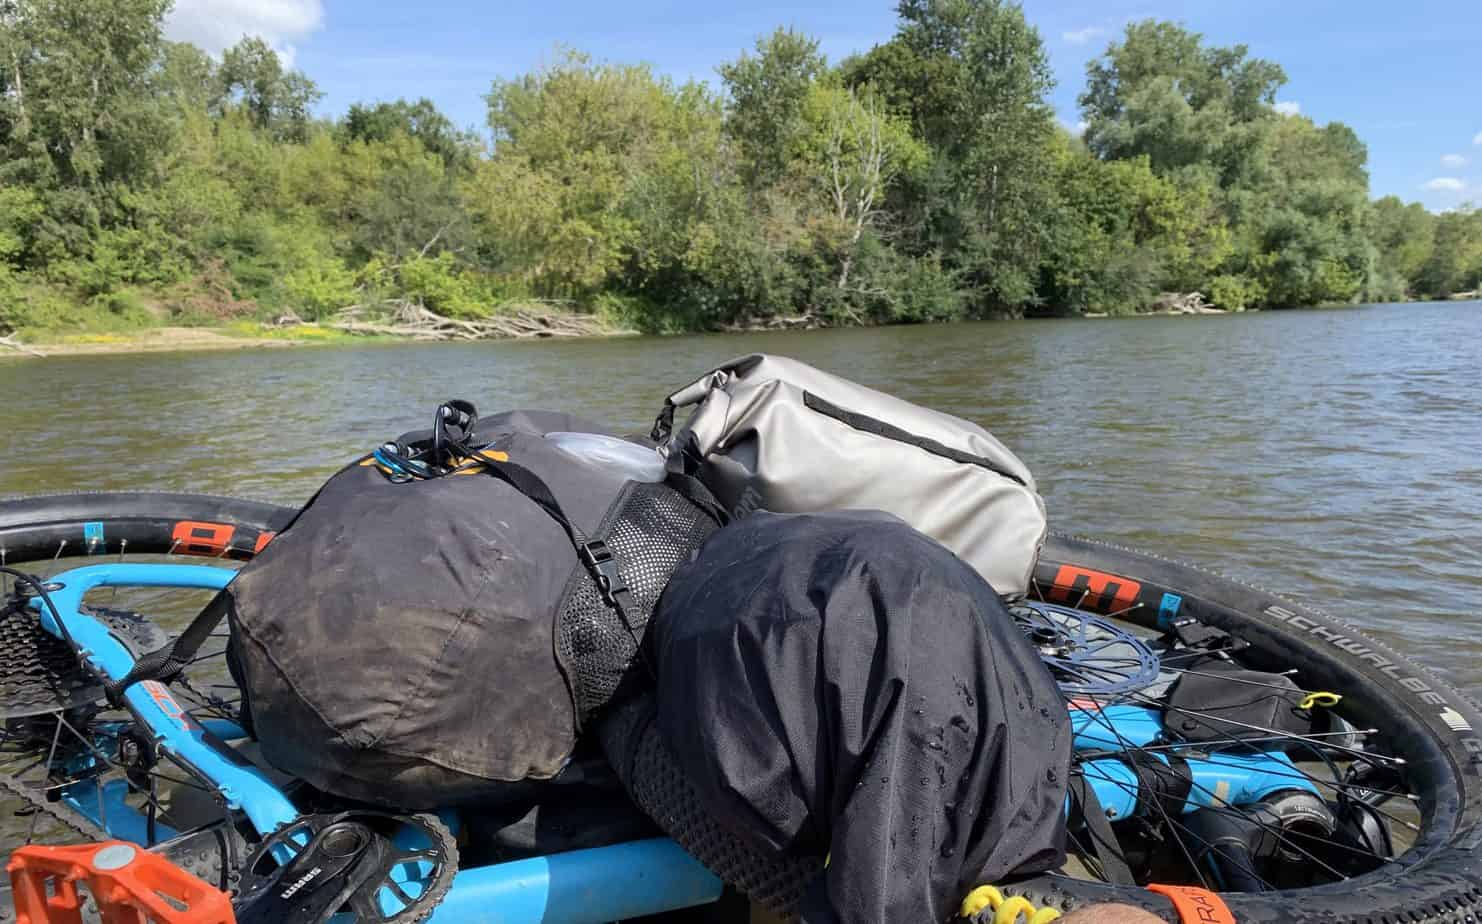 Bikerafting – What is it?